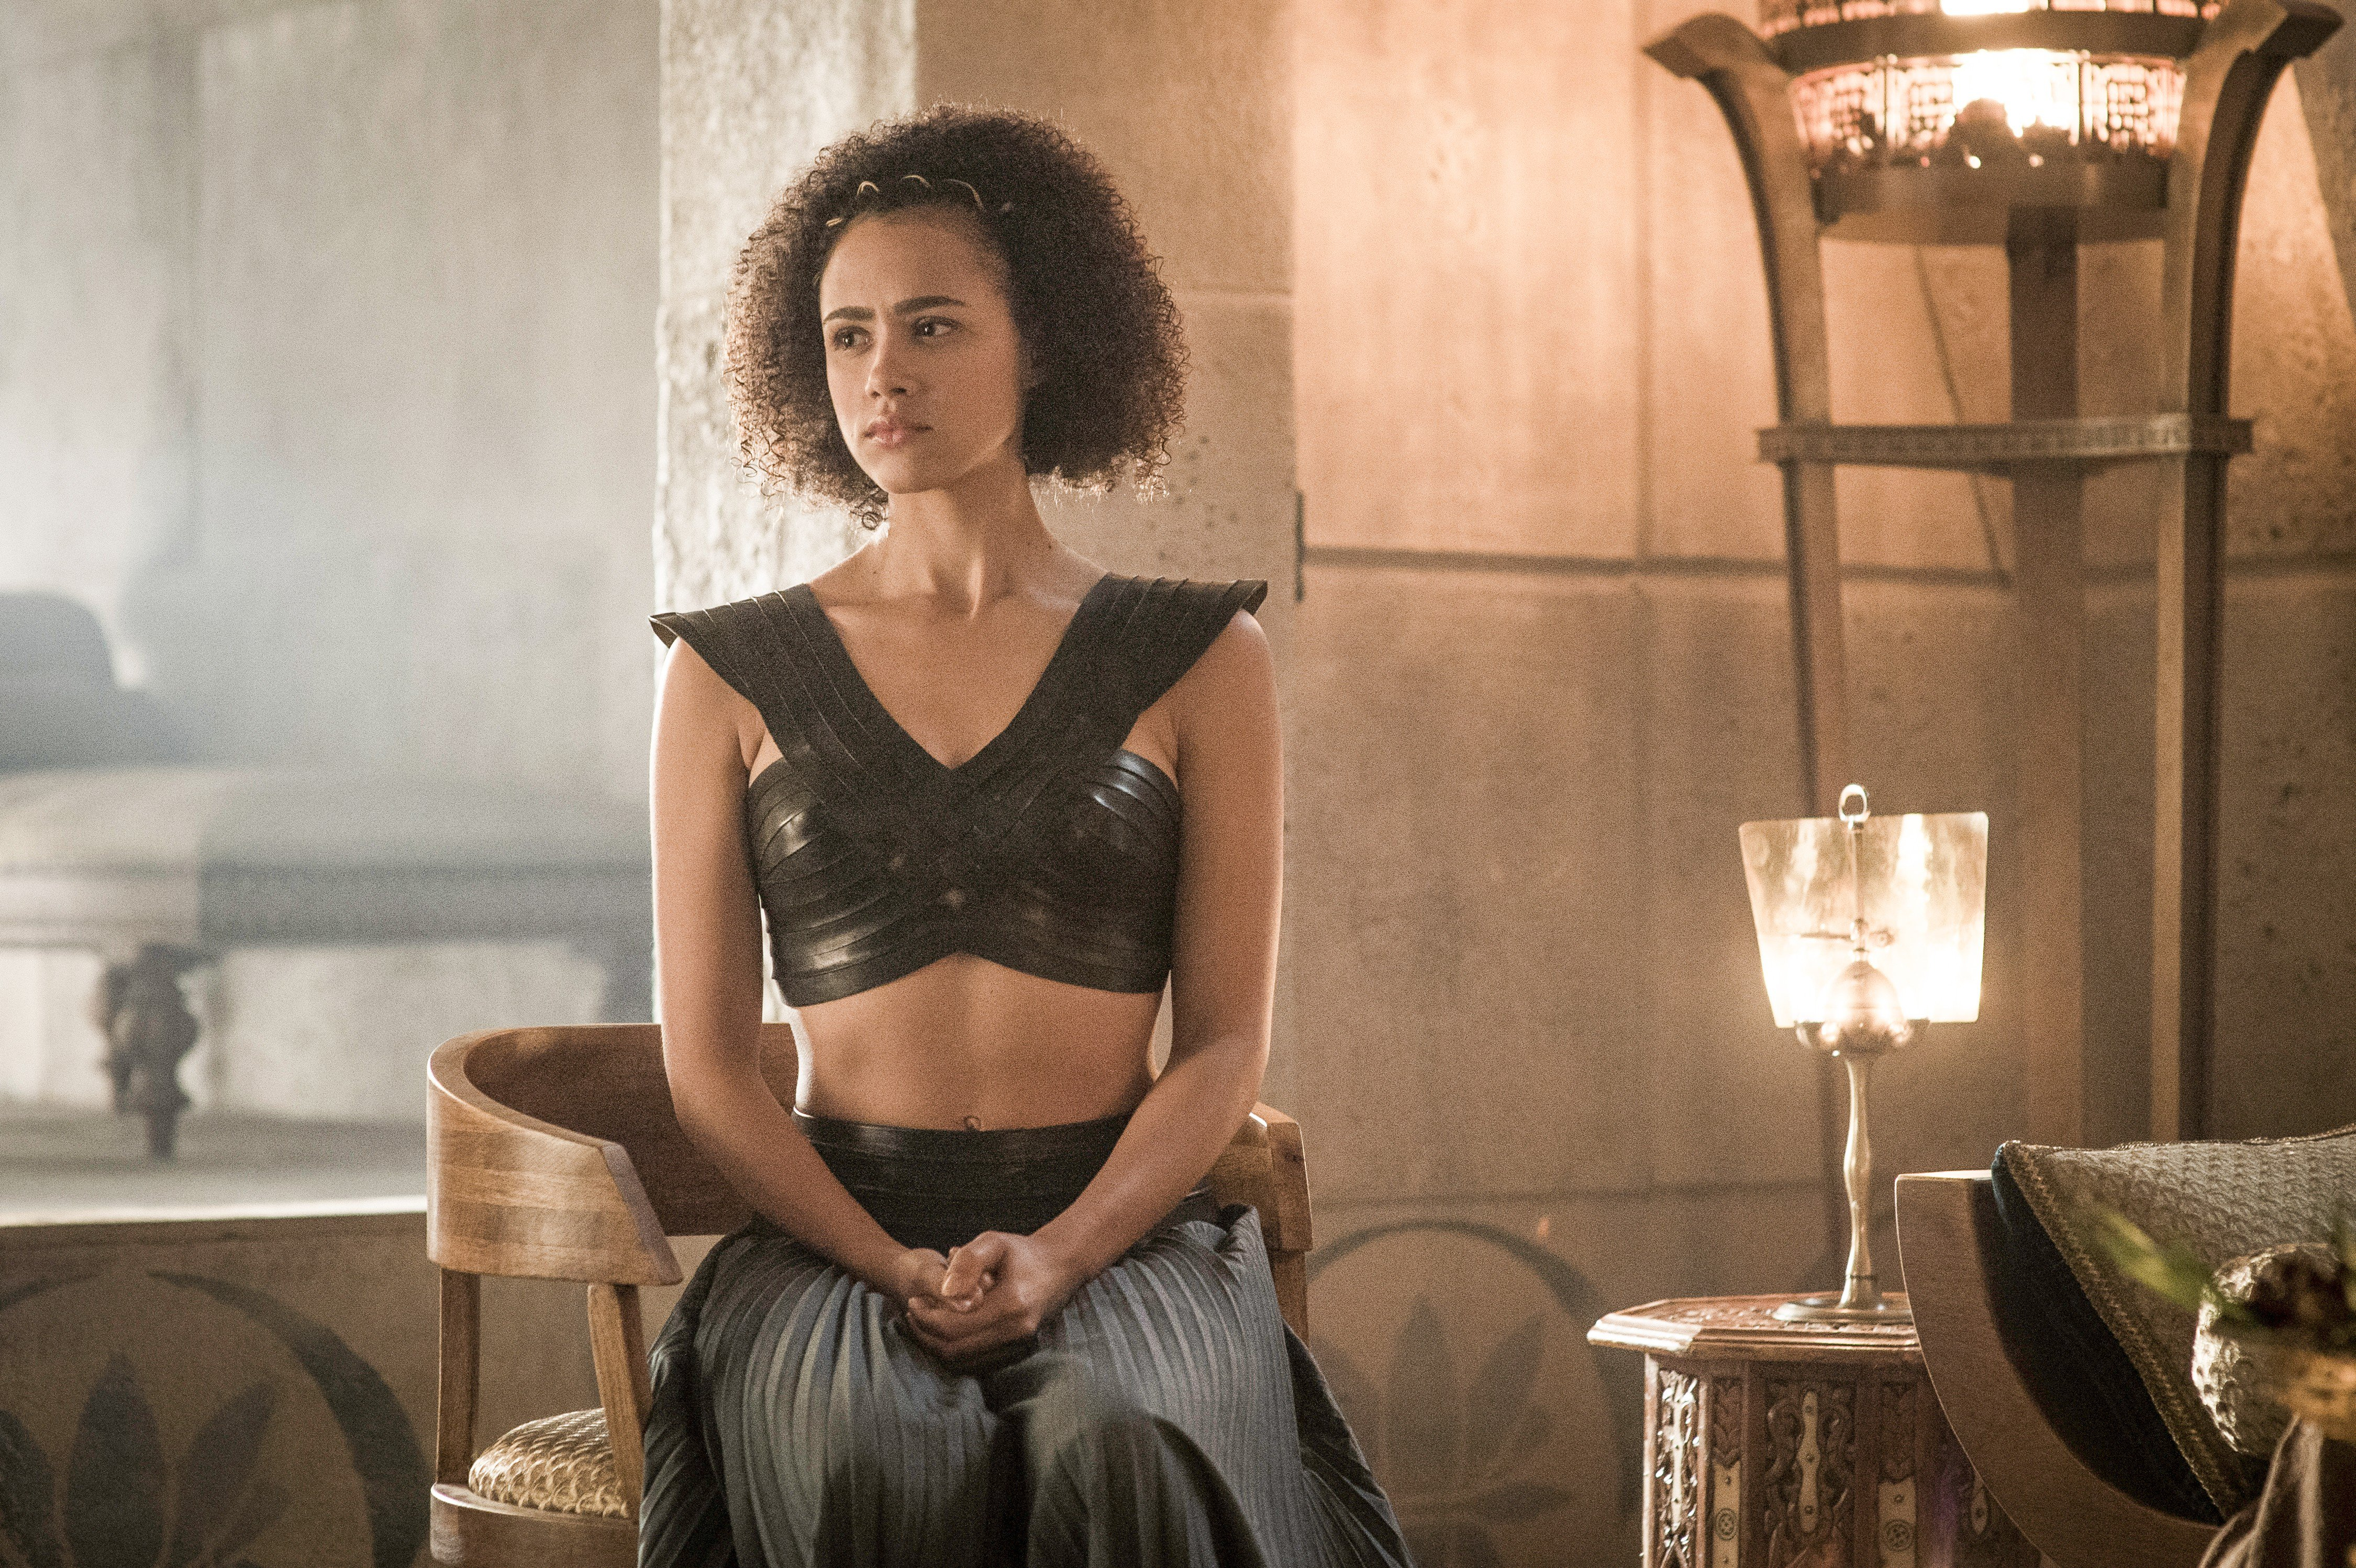 missandei hd tv shows 4k wallpapers images backgrounds